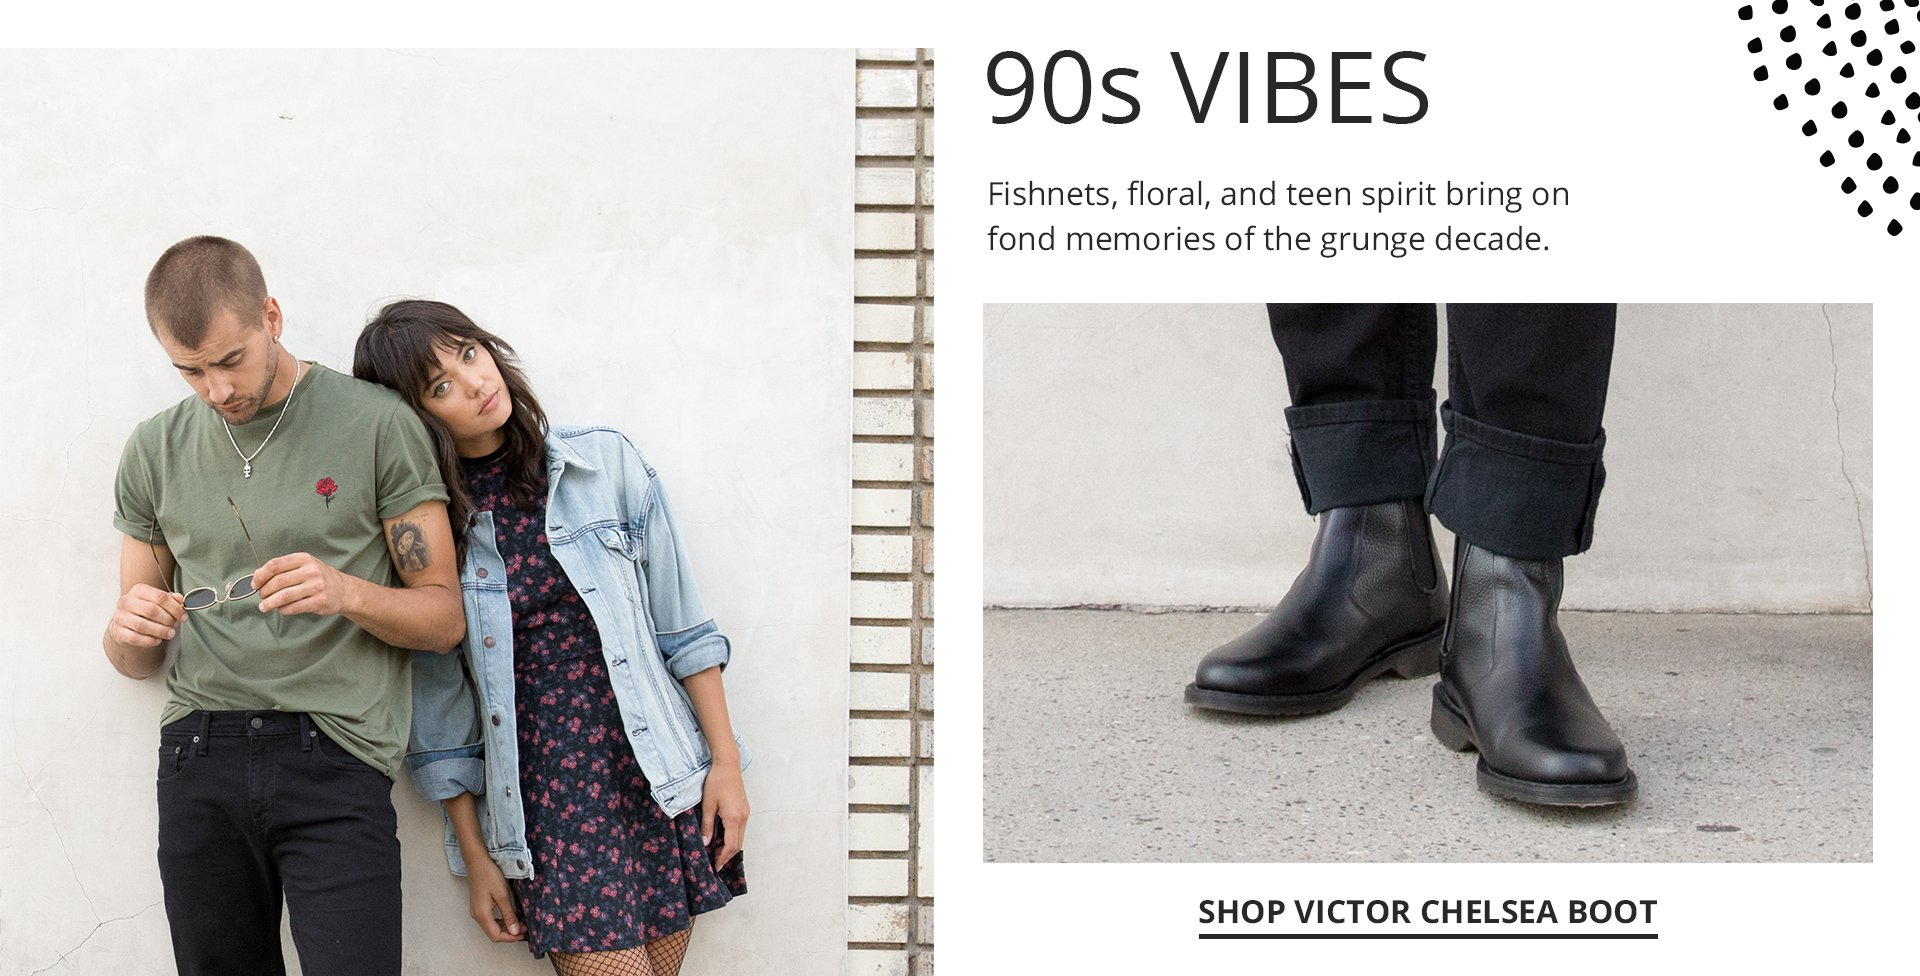 Shop Victor Chelsea Boot